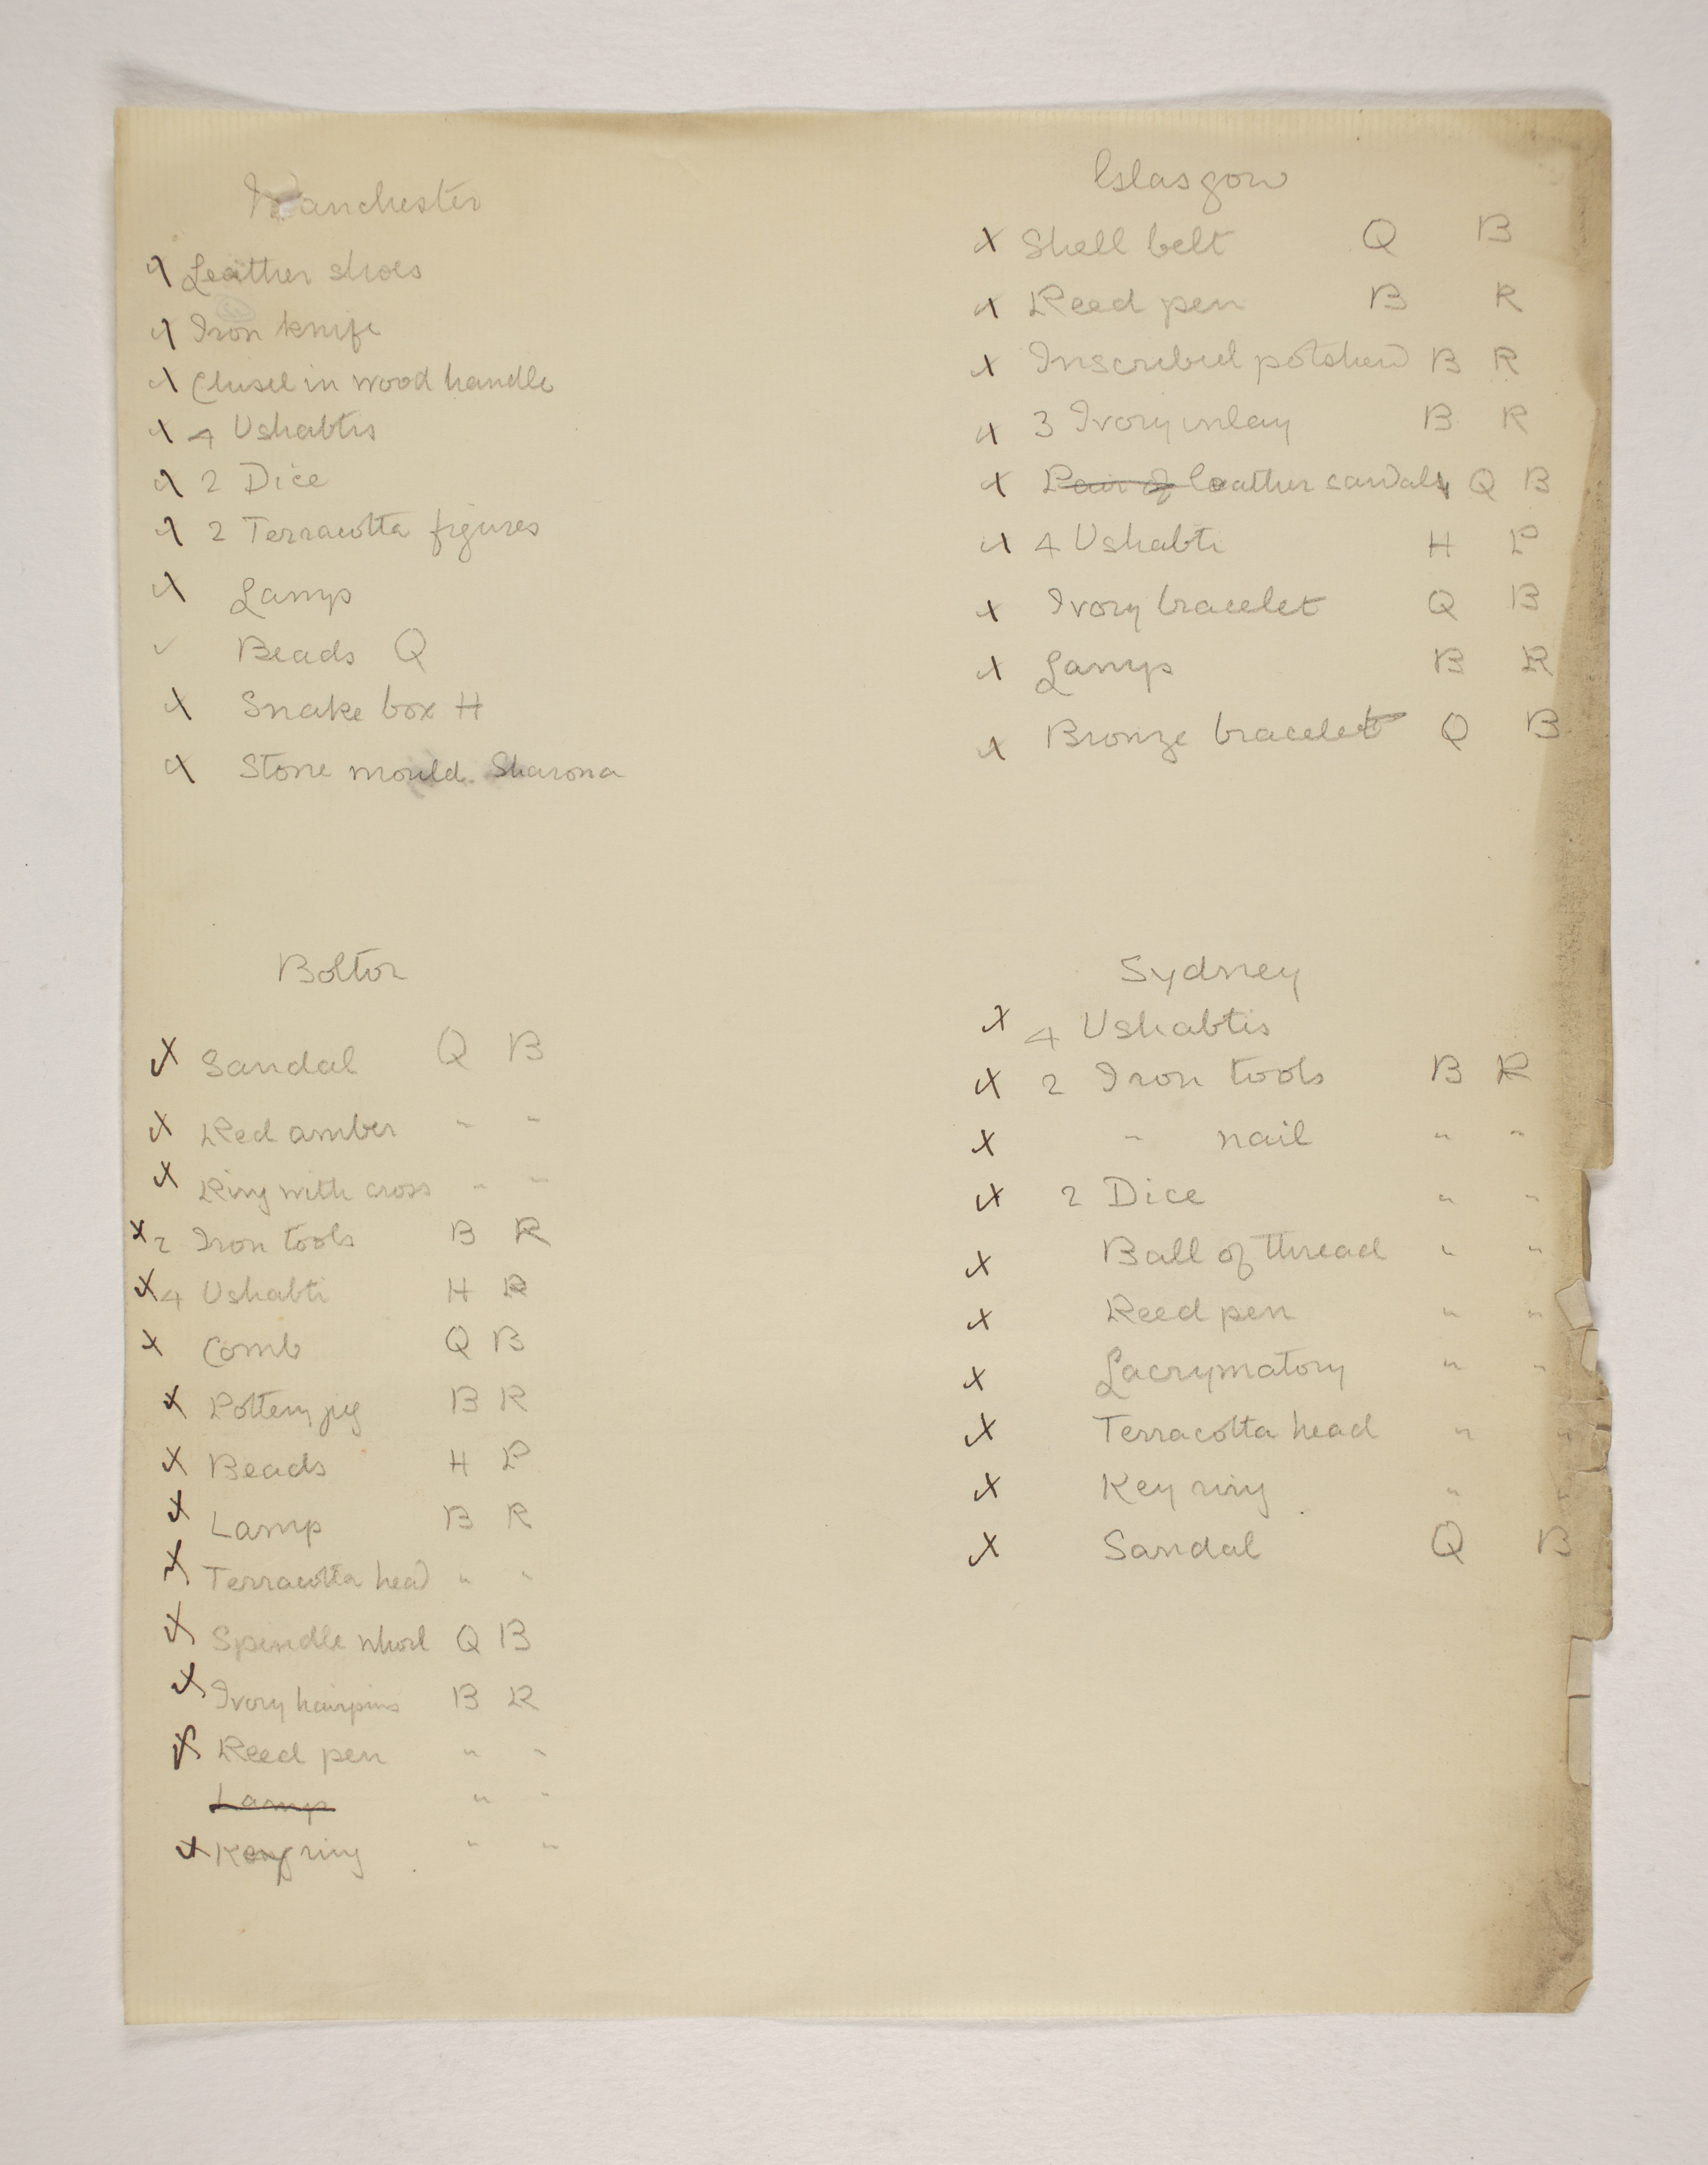 1902-03 Abydos Multiple institution list PMA/WFP1/D/11/62